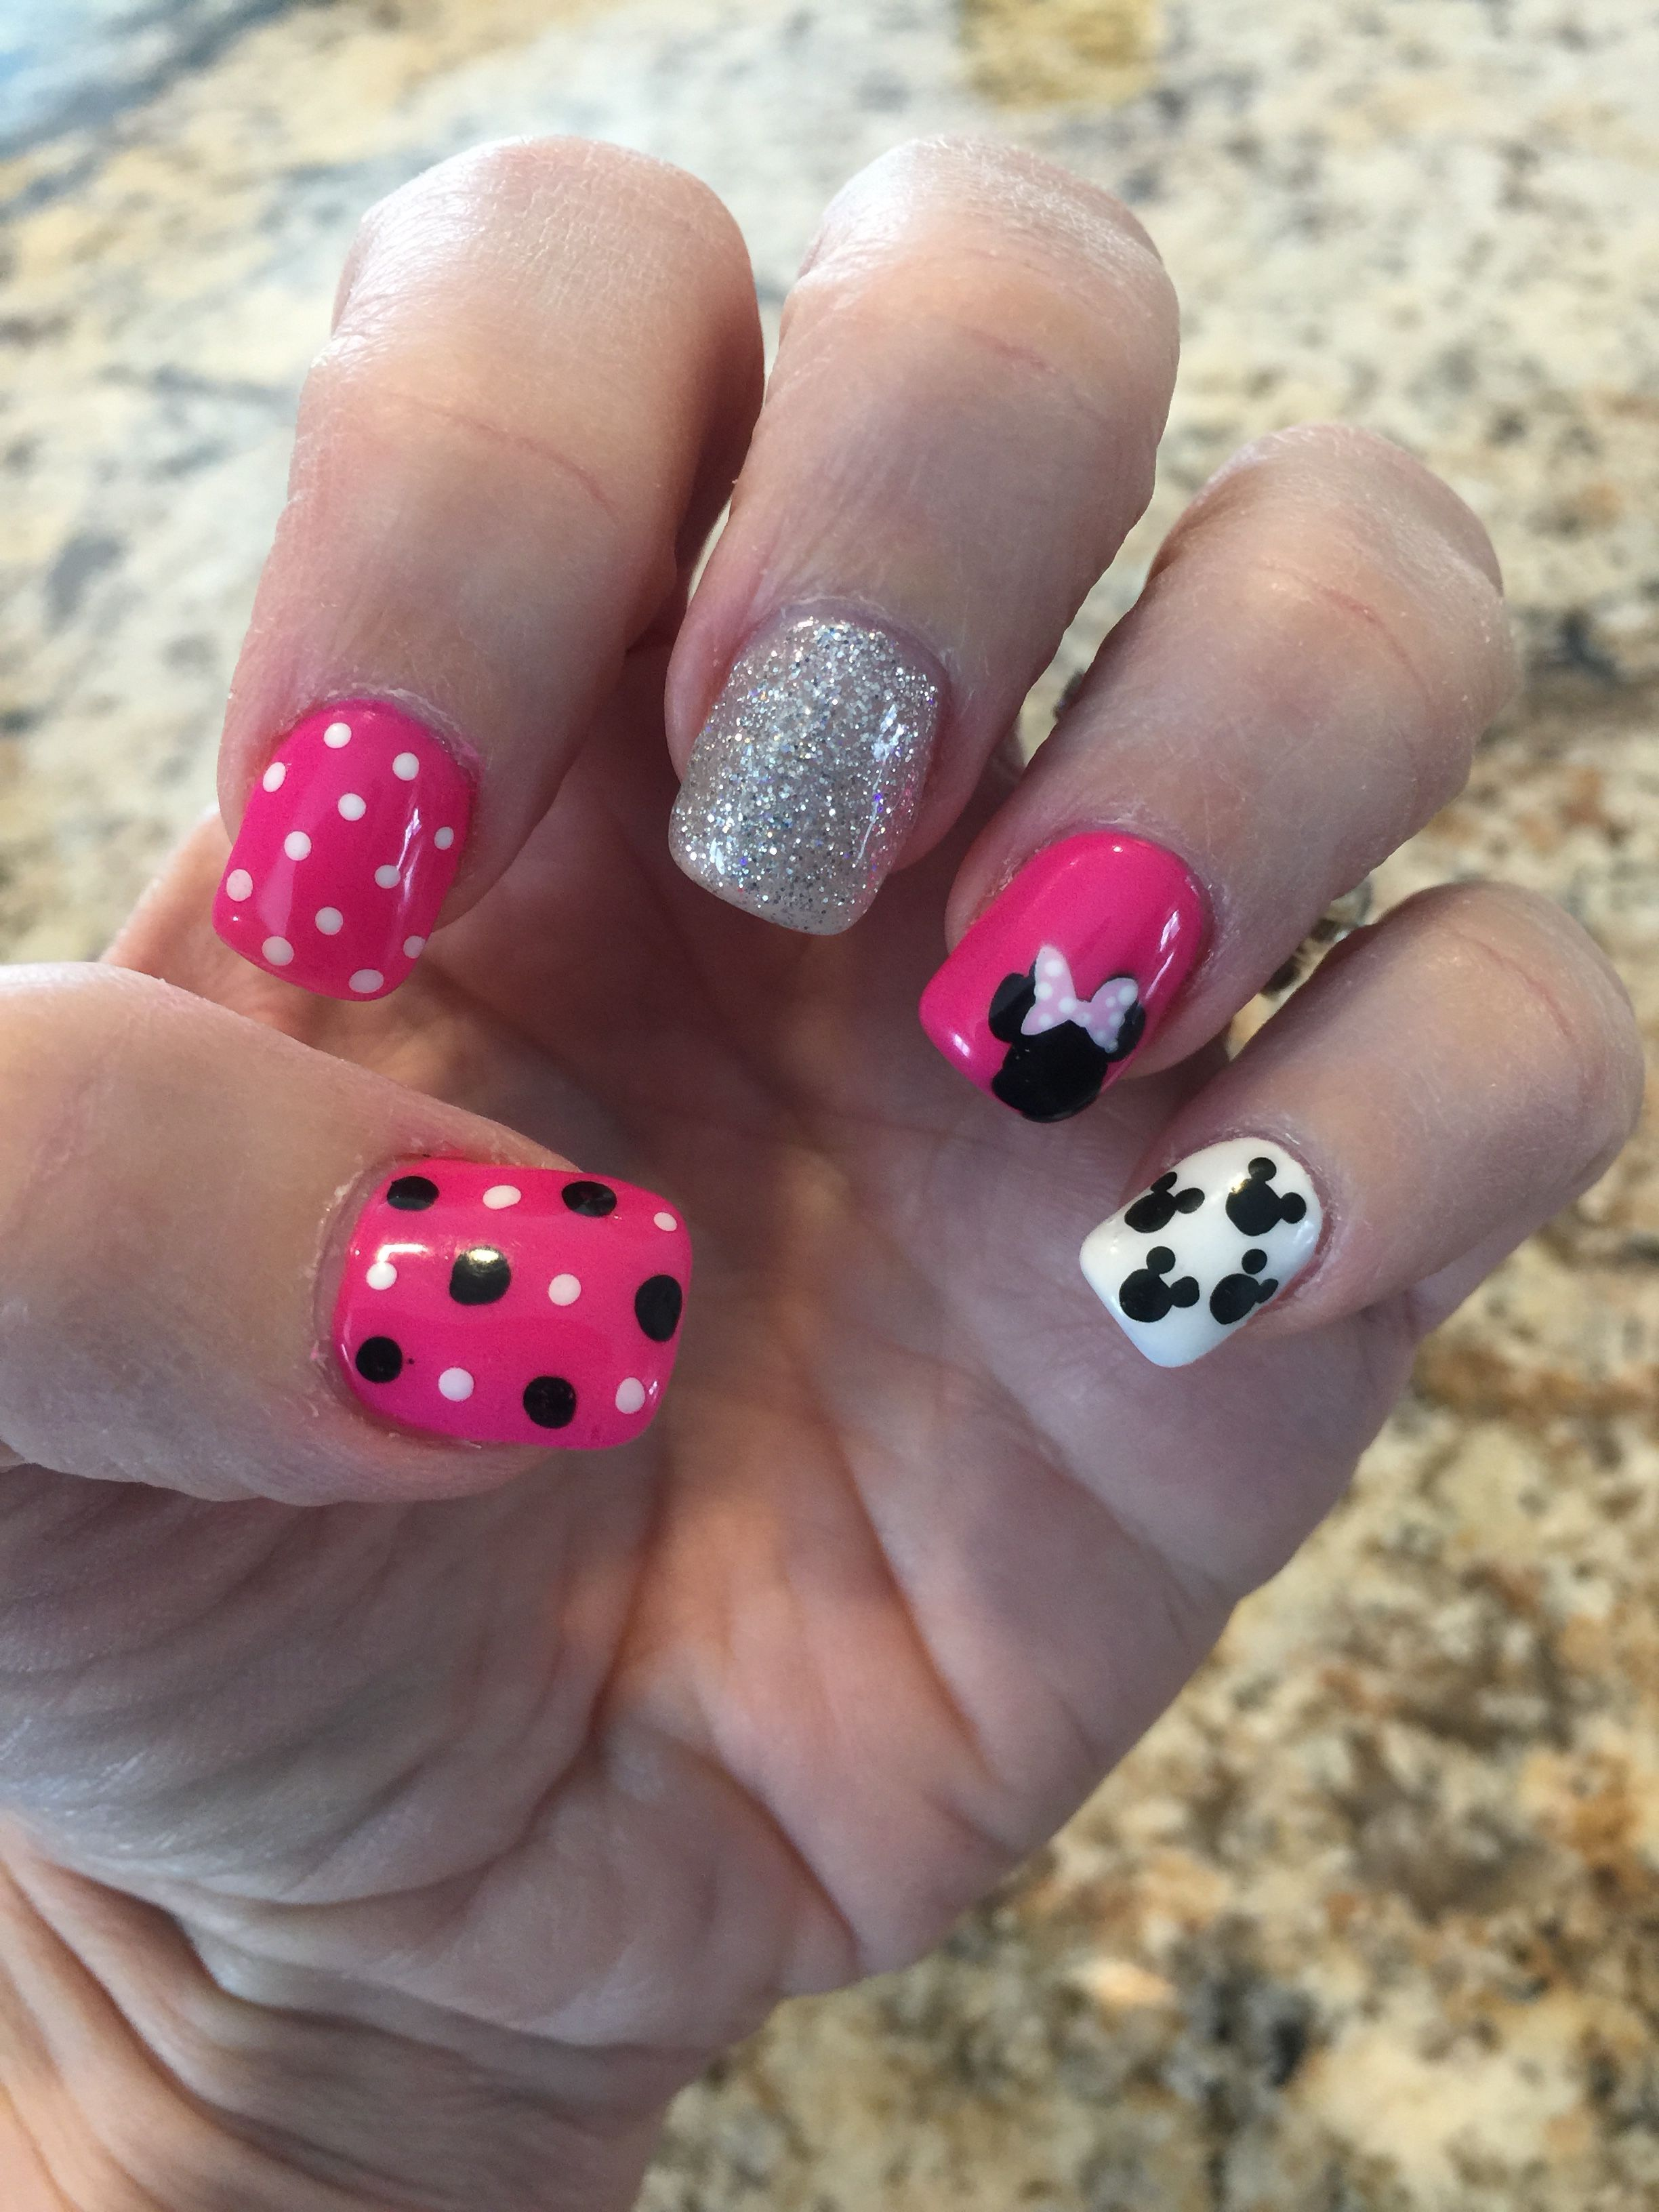 My March Disney nail design #KidsNails | Kids Nails | Pinterest ...